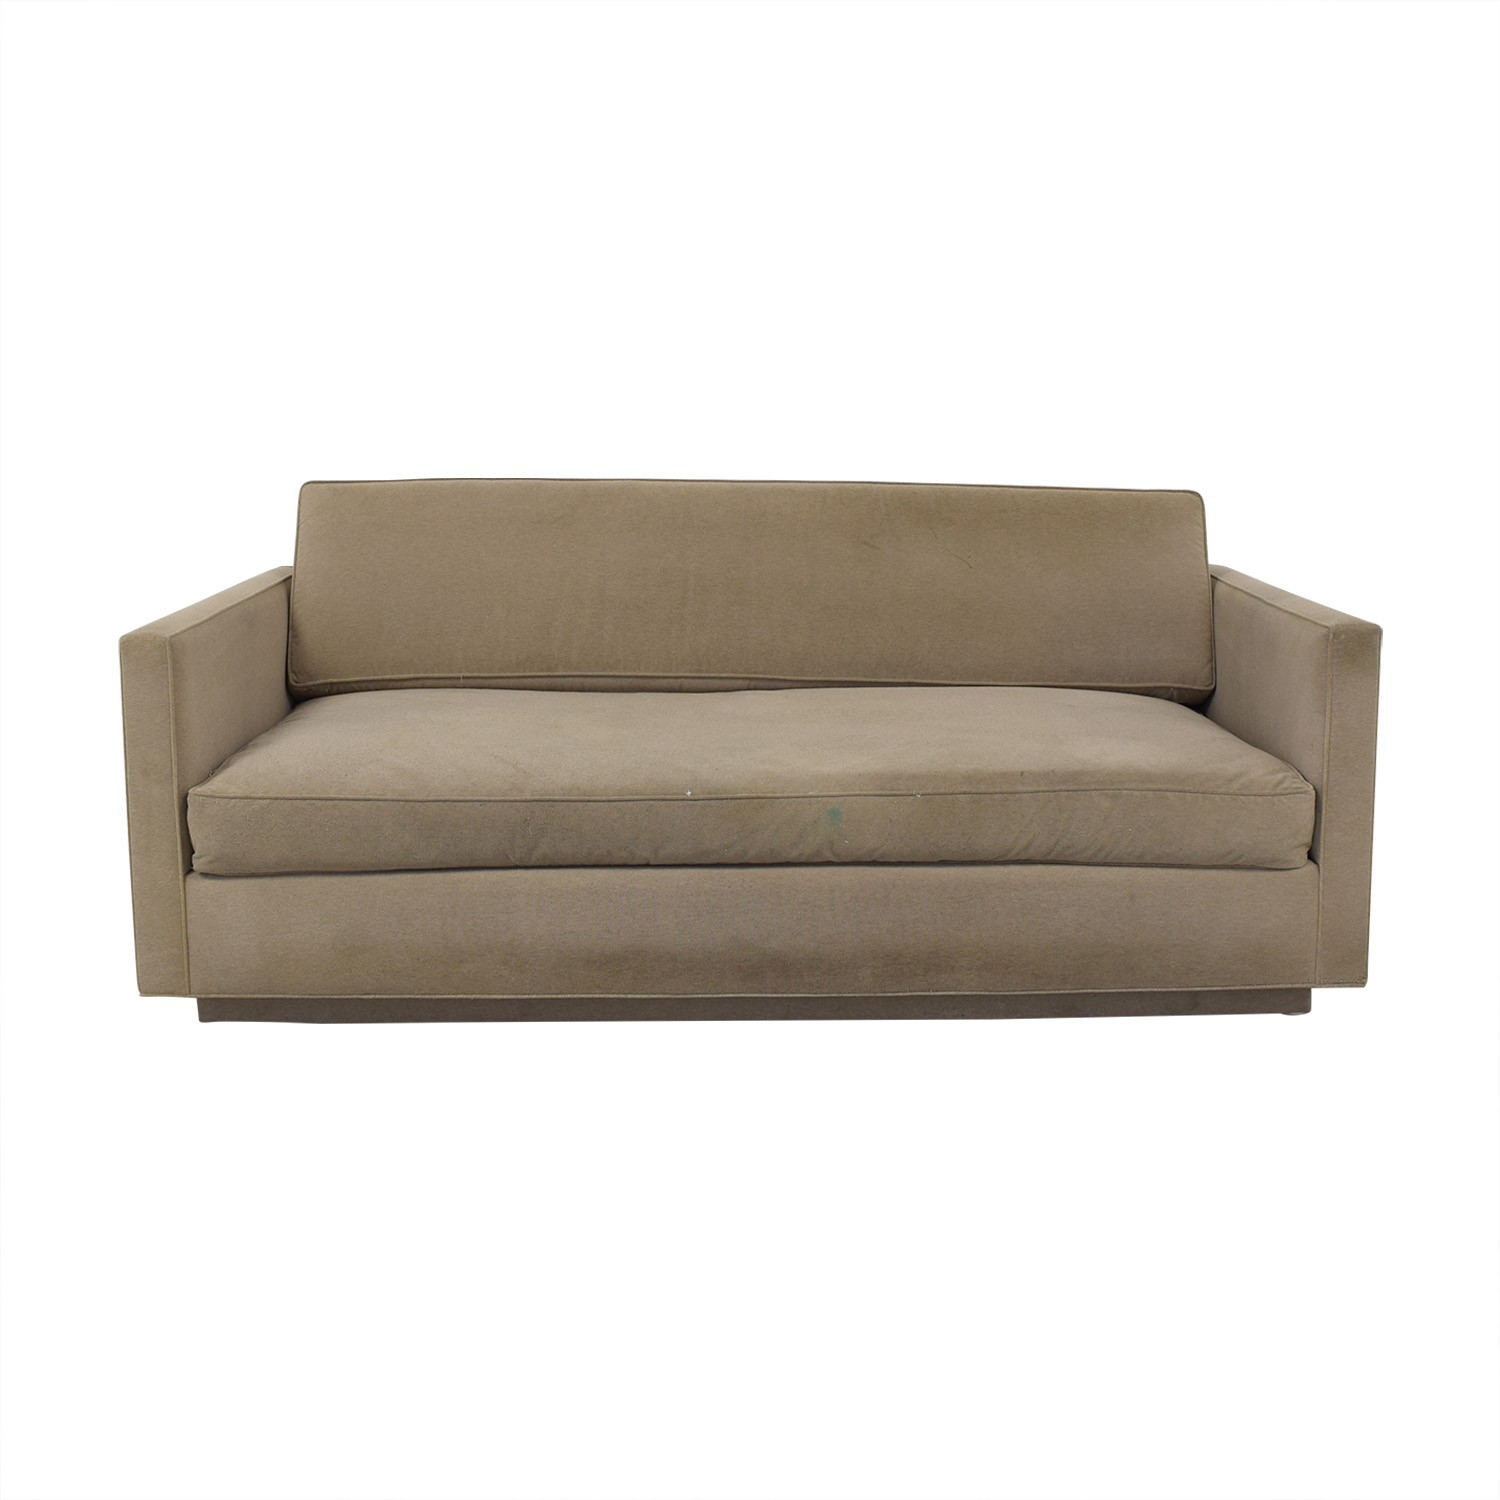 Todd Hase Todd Hase One Cushion Sofa Classic Sofas